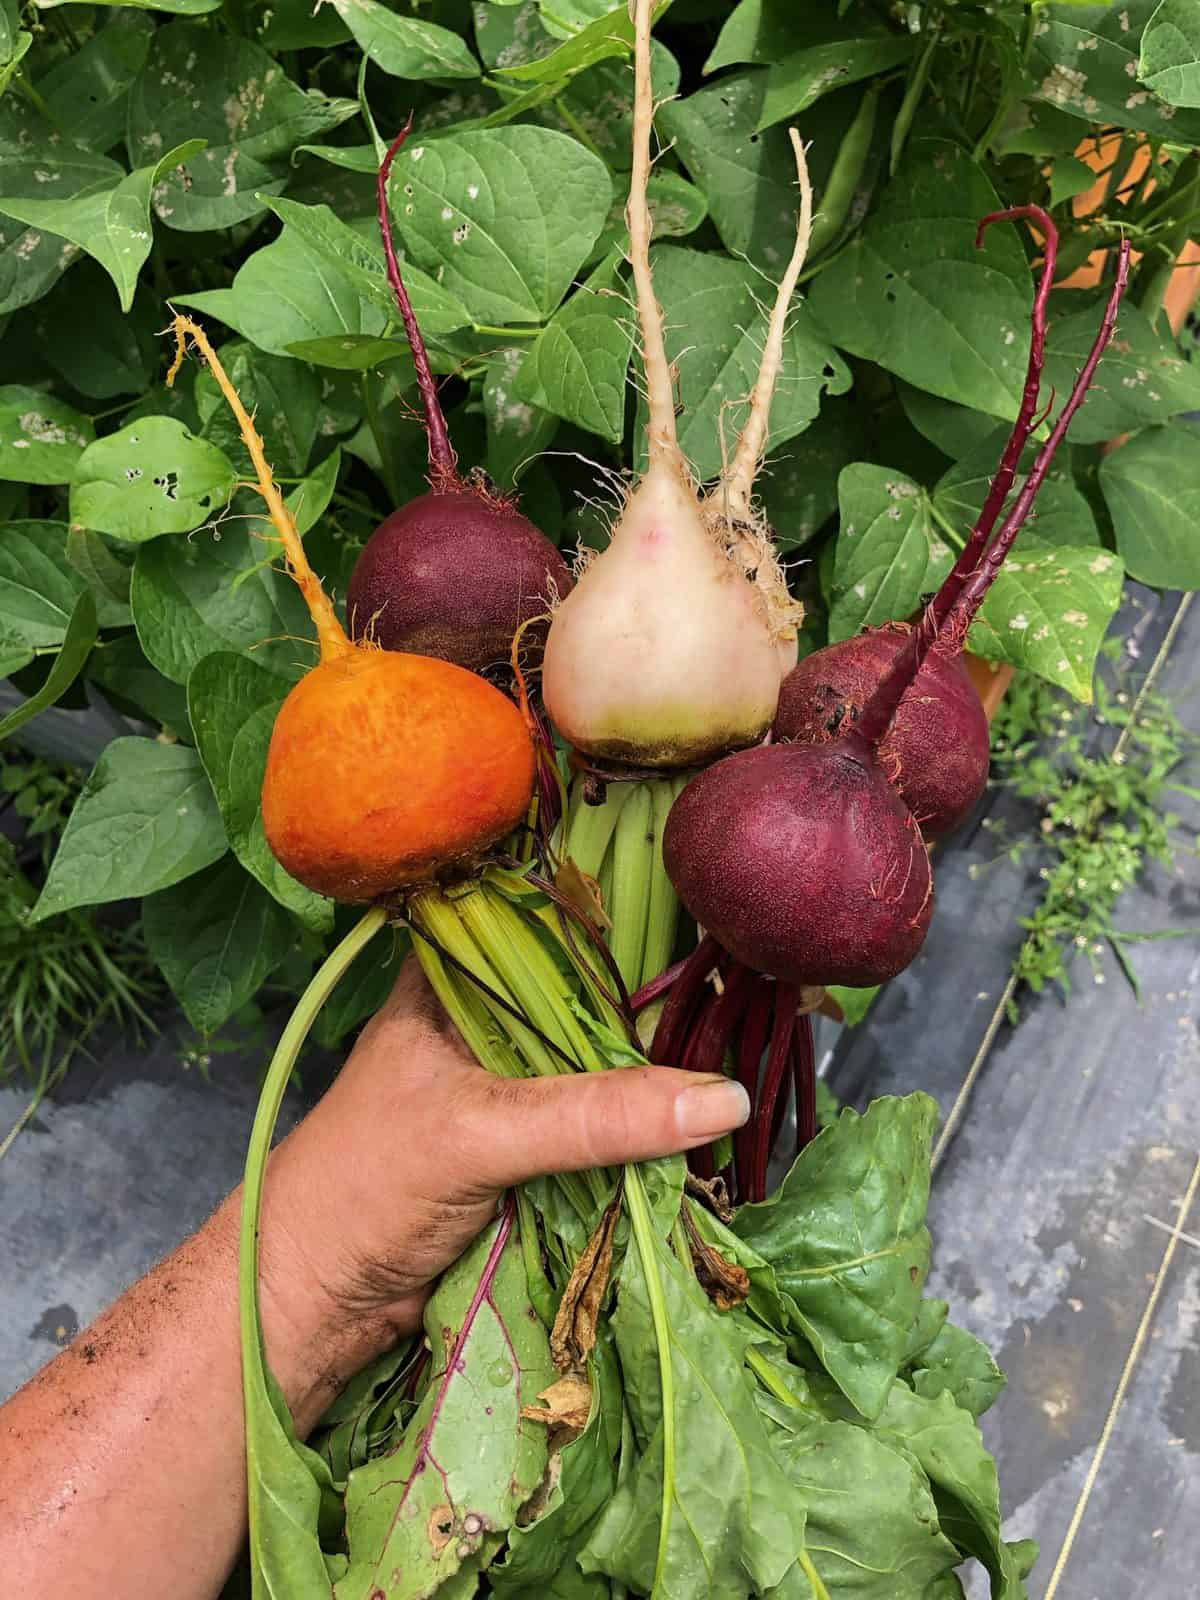 A hand holds several different colors of beets. They have just been harvested, and dirt clings to the vegetables.